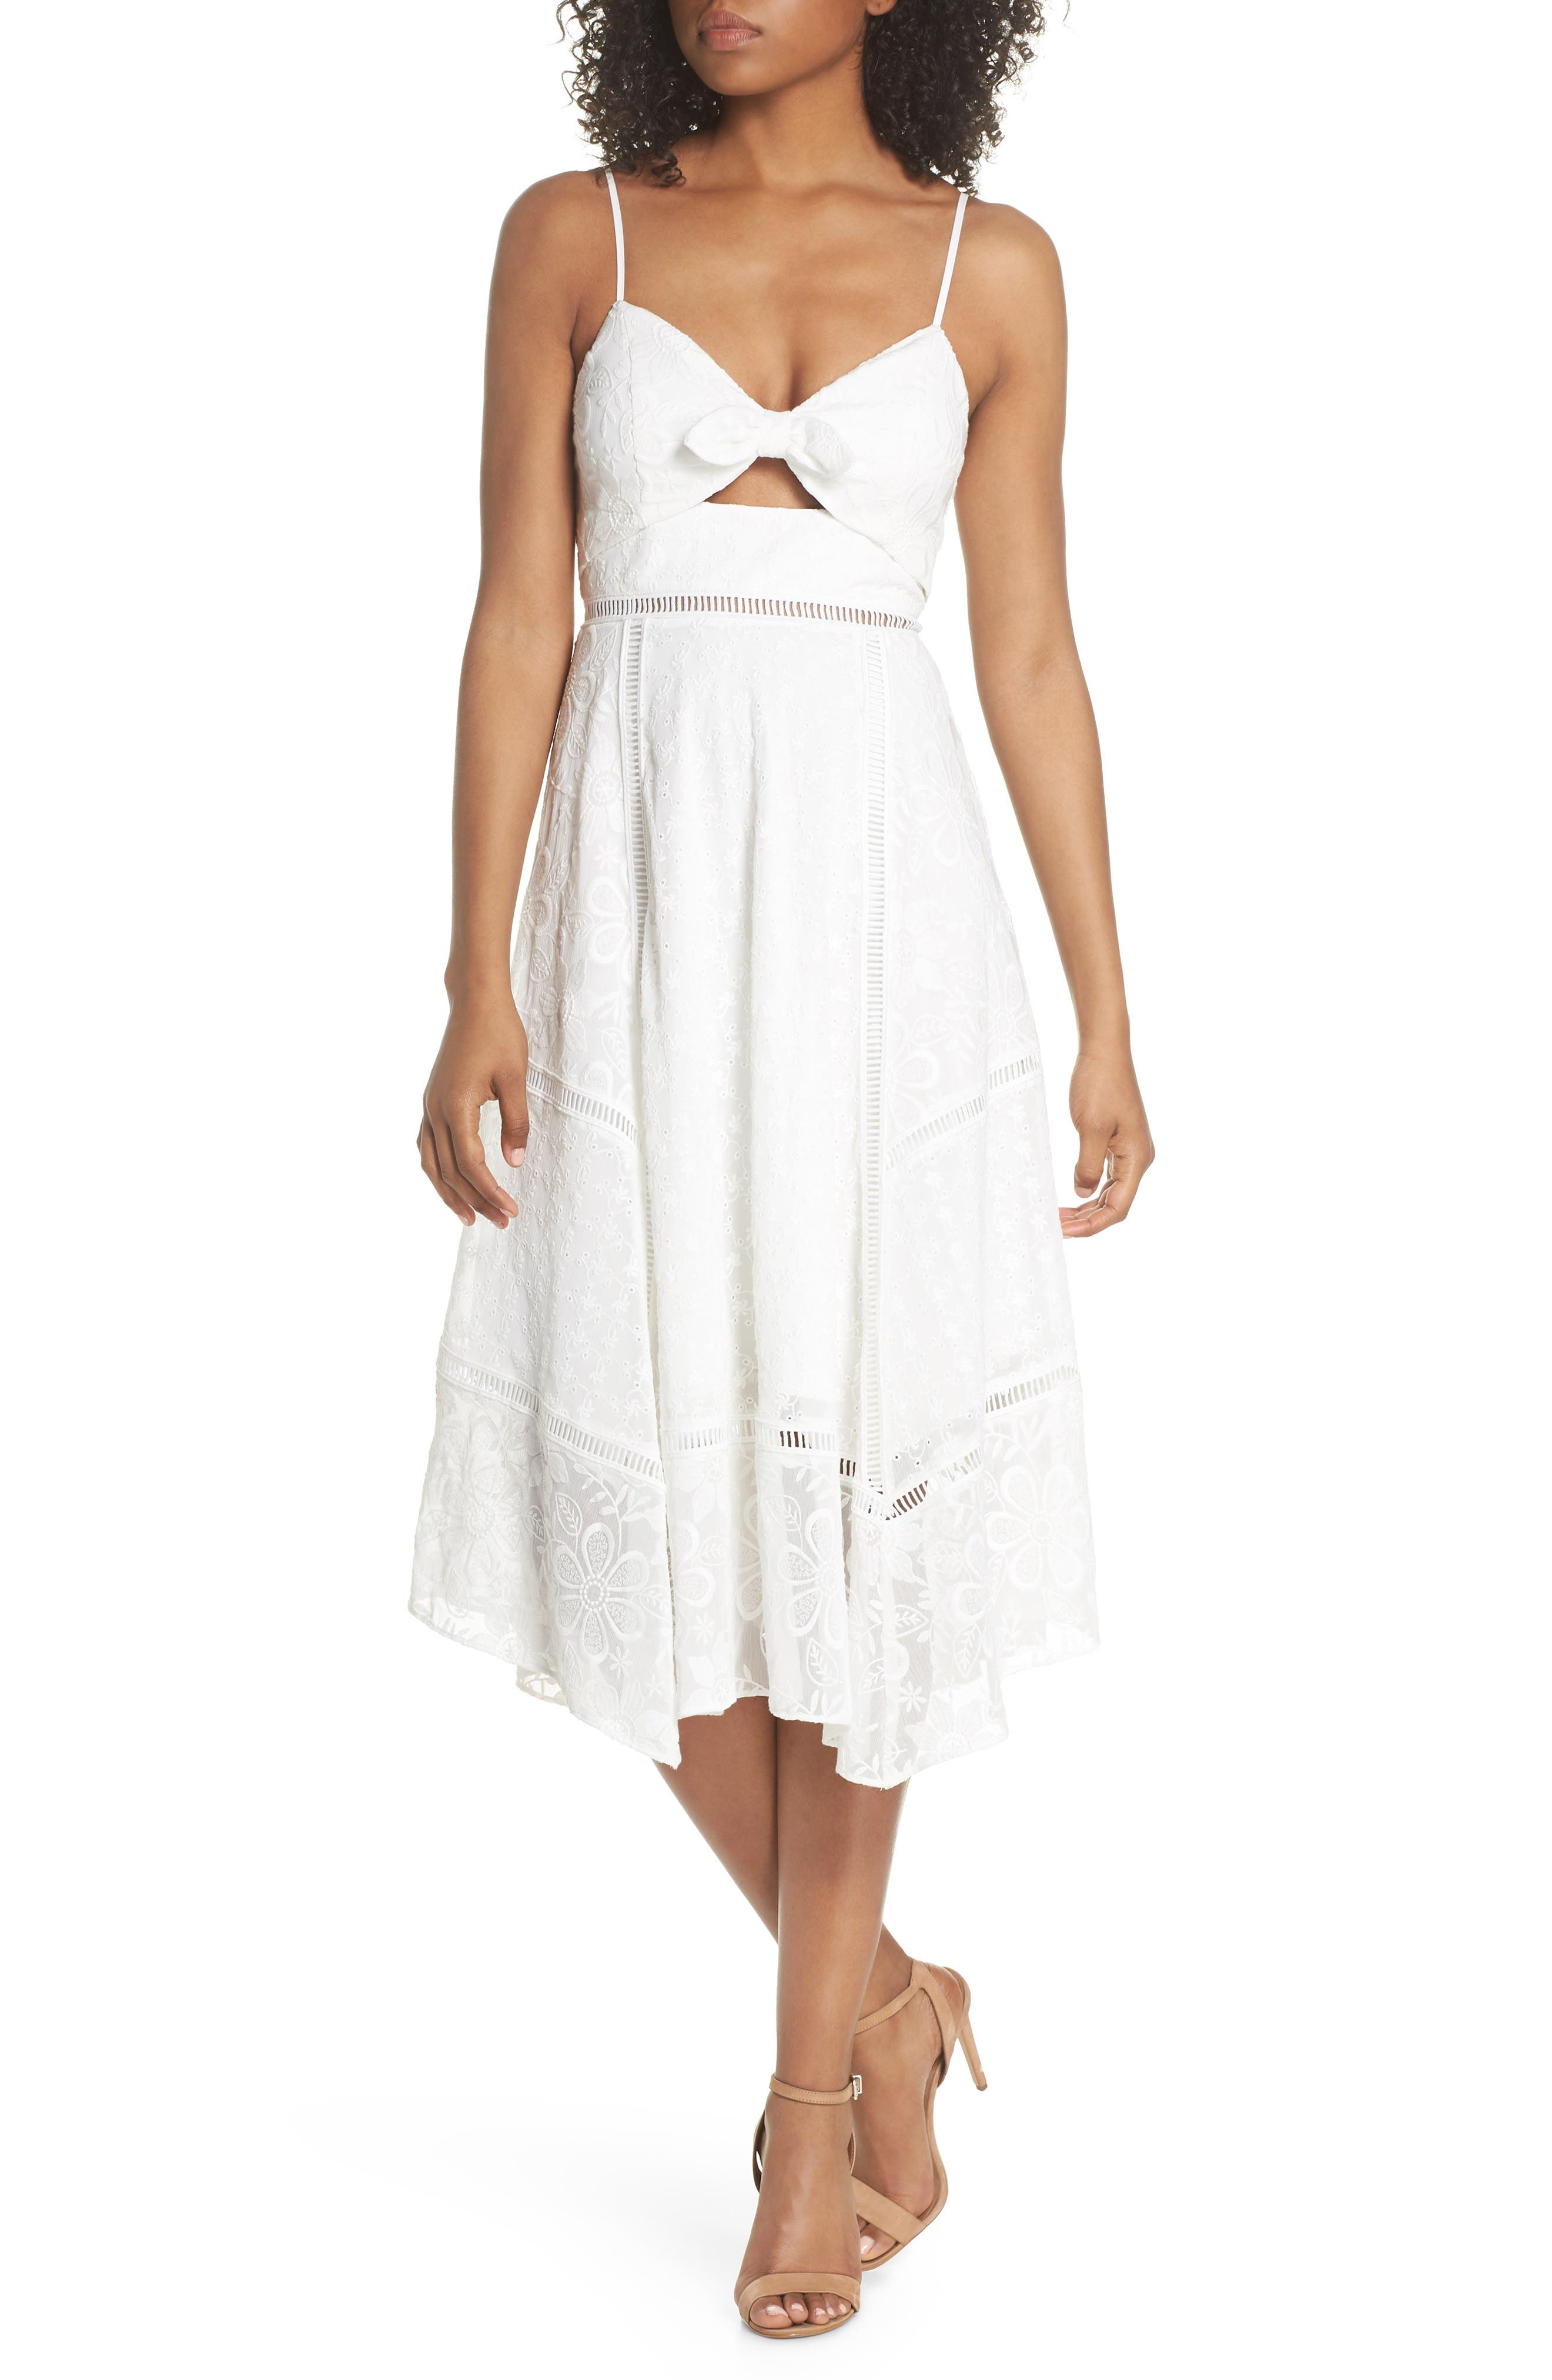 Broderie Anglaise Knot Detail Dress,                             Main thumbnail 1, color,                             White